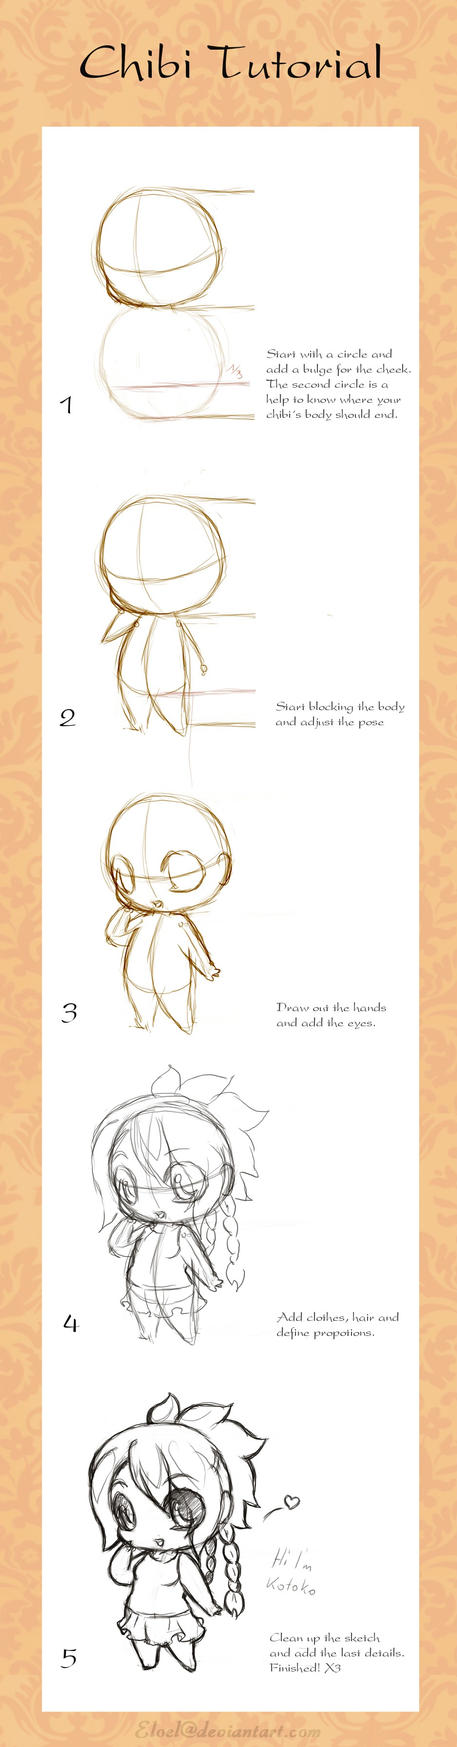 Chibi Tutorial by eloel